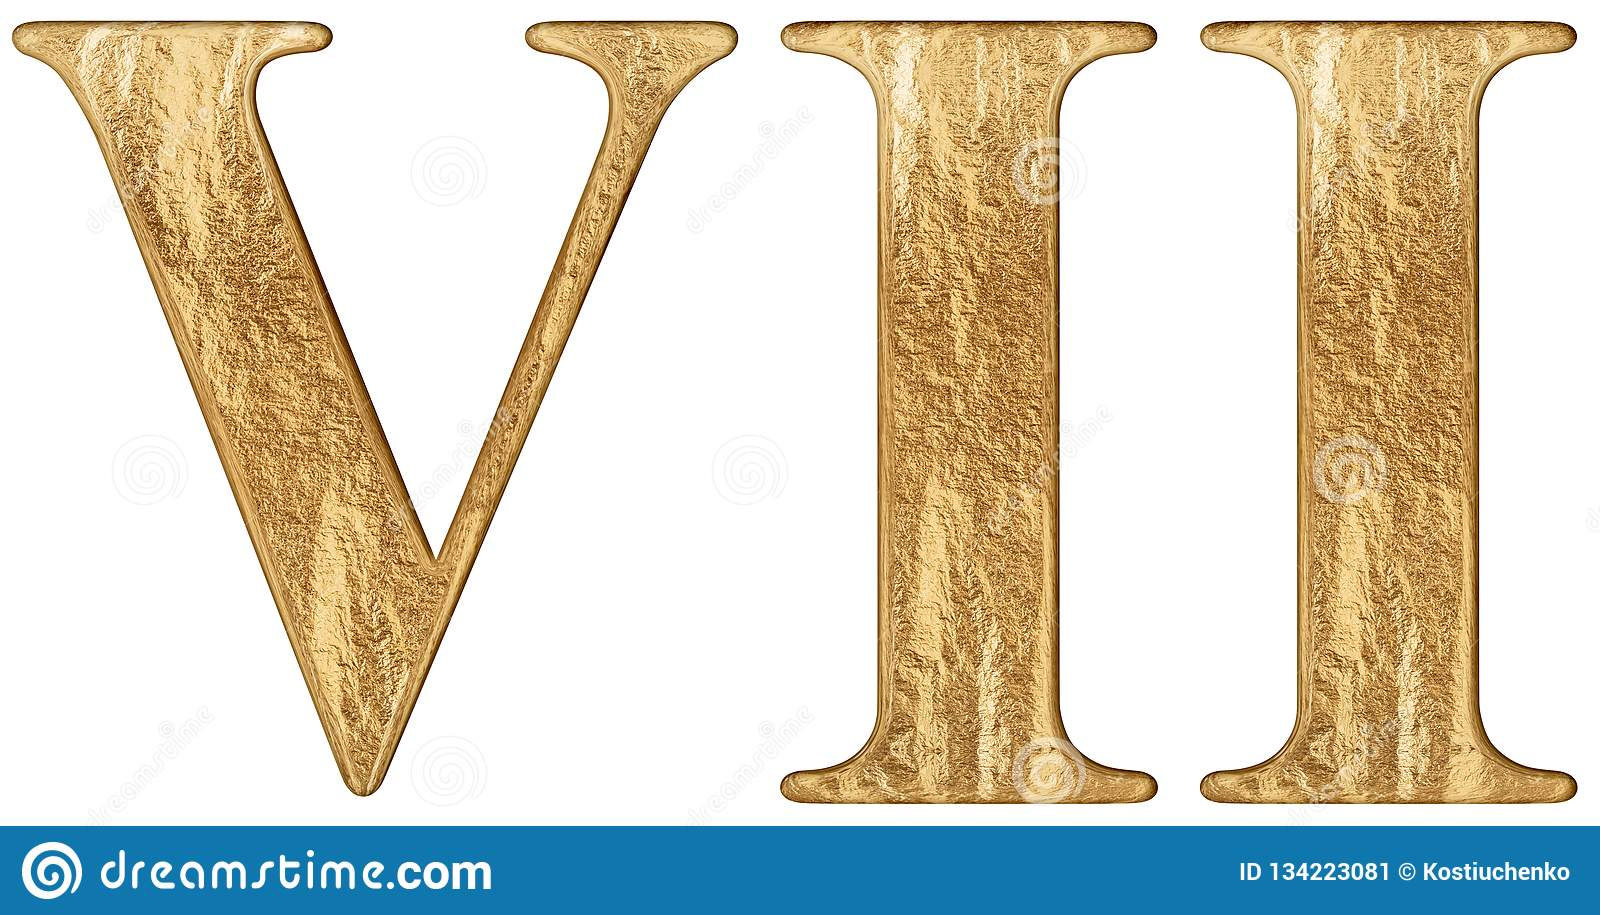 Roman Numeral Vii Septem 7 Seven Isolated On White Background